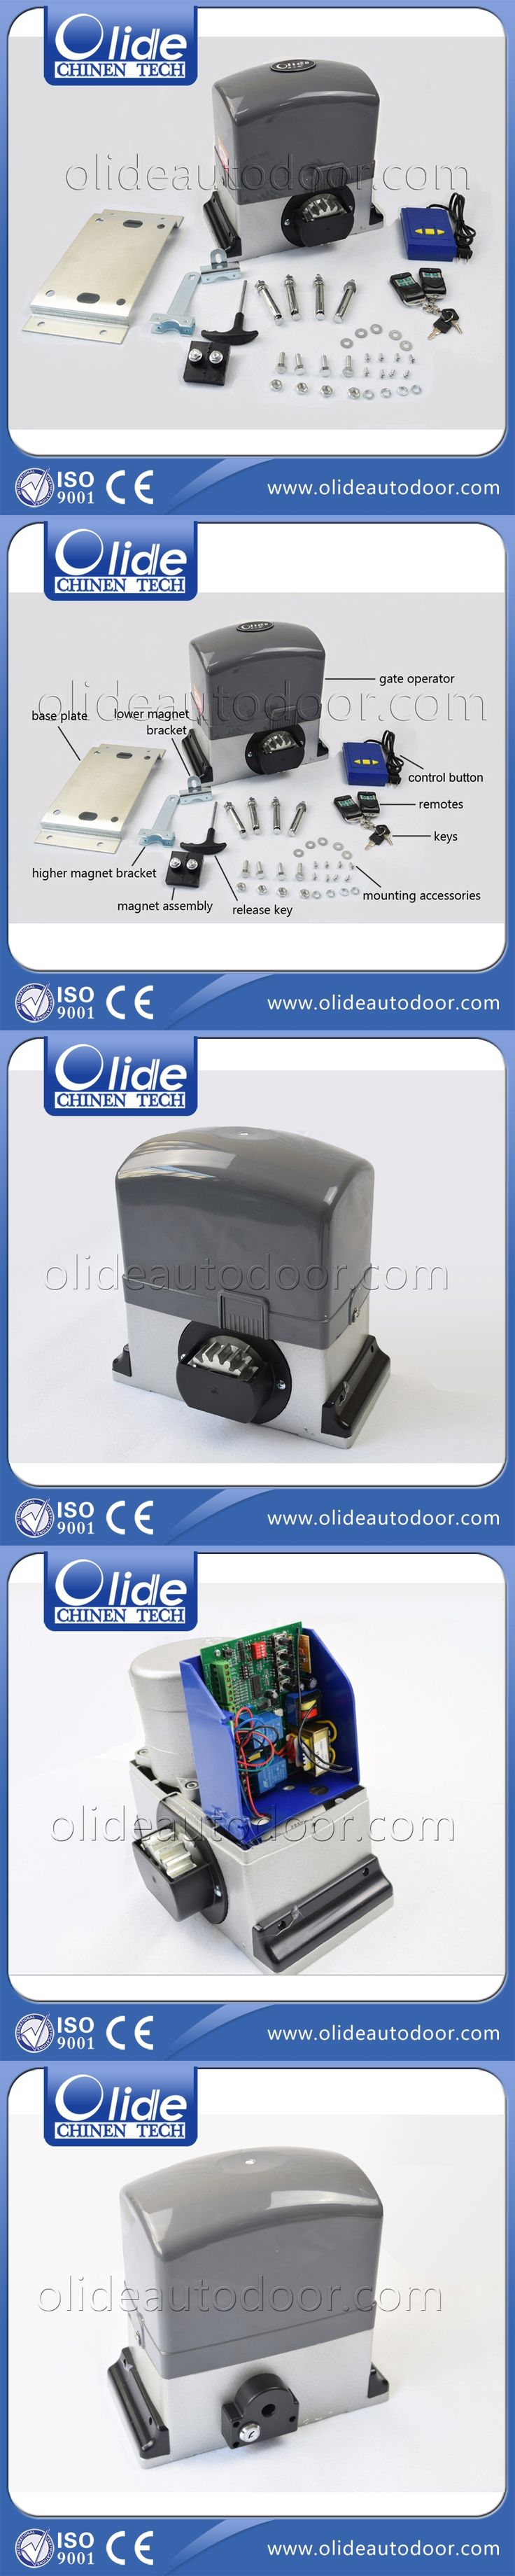 Automatic sliding gate opener for 1000kg-1200kg gate weight